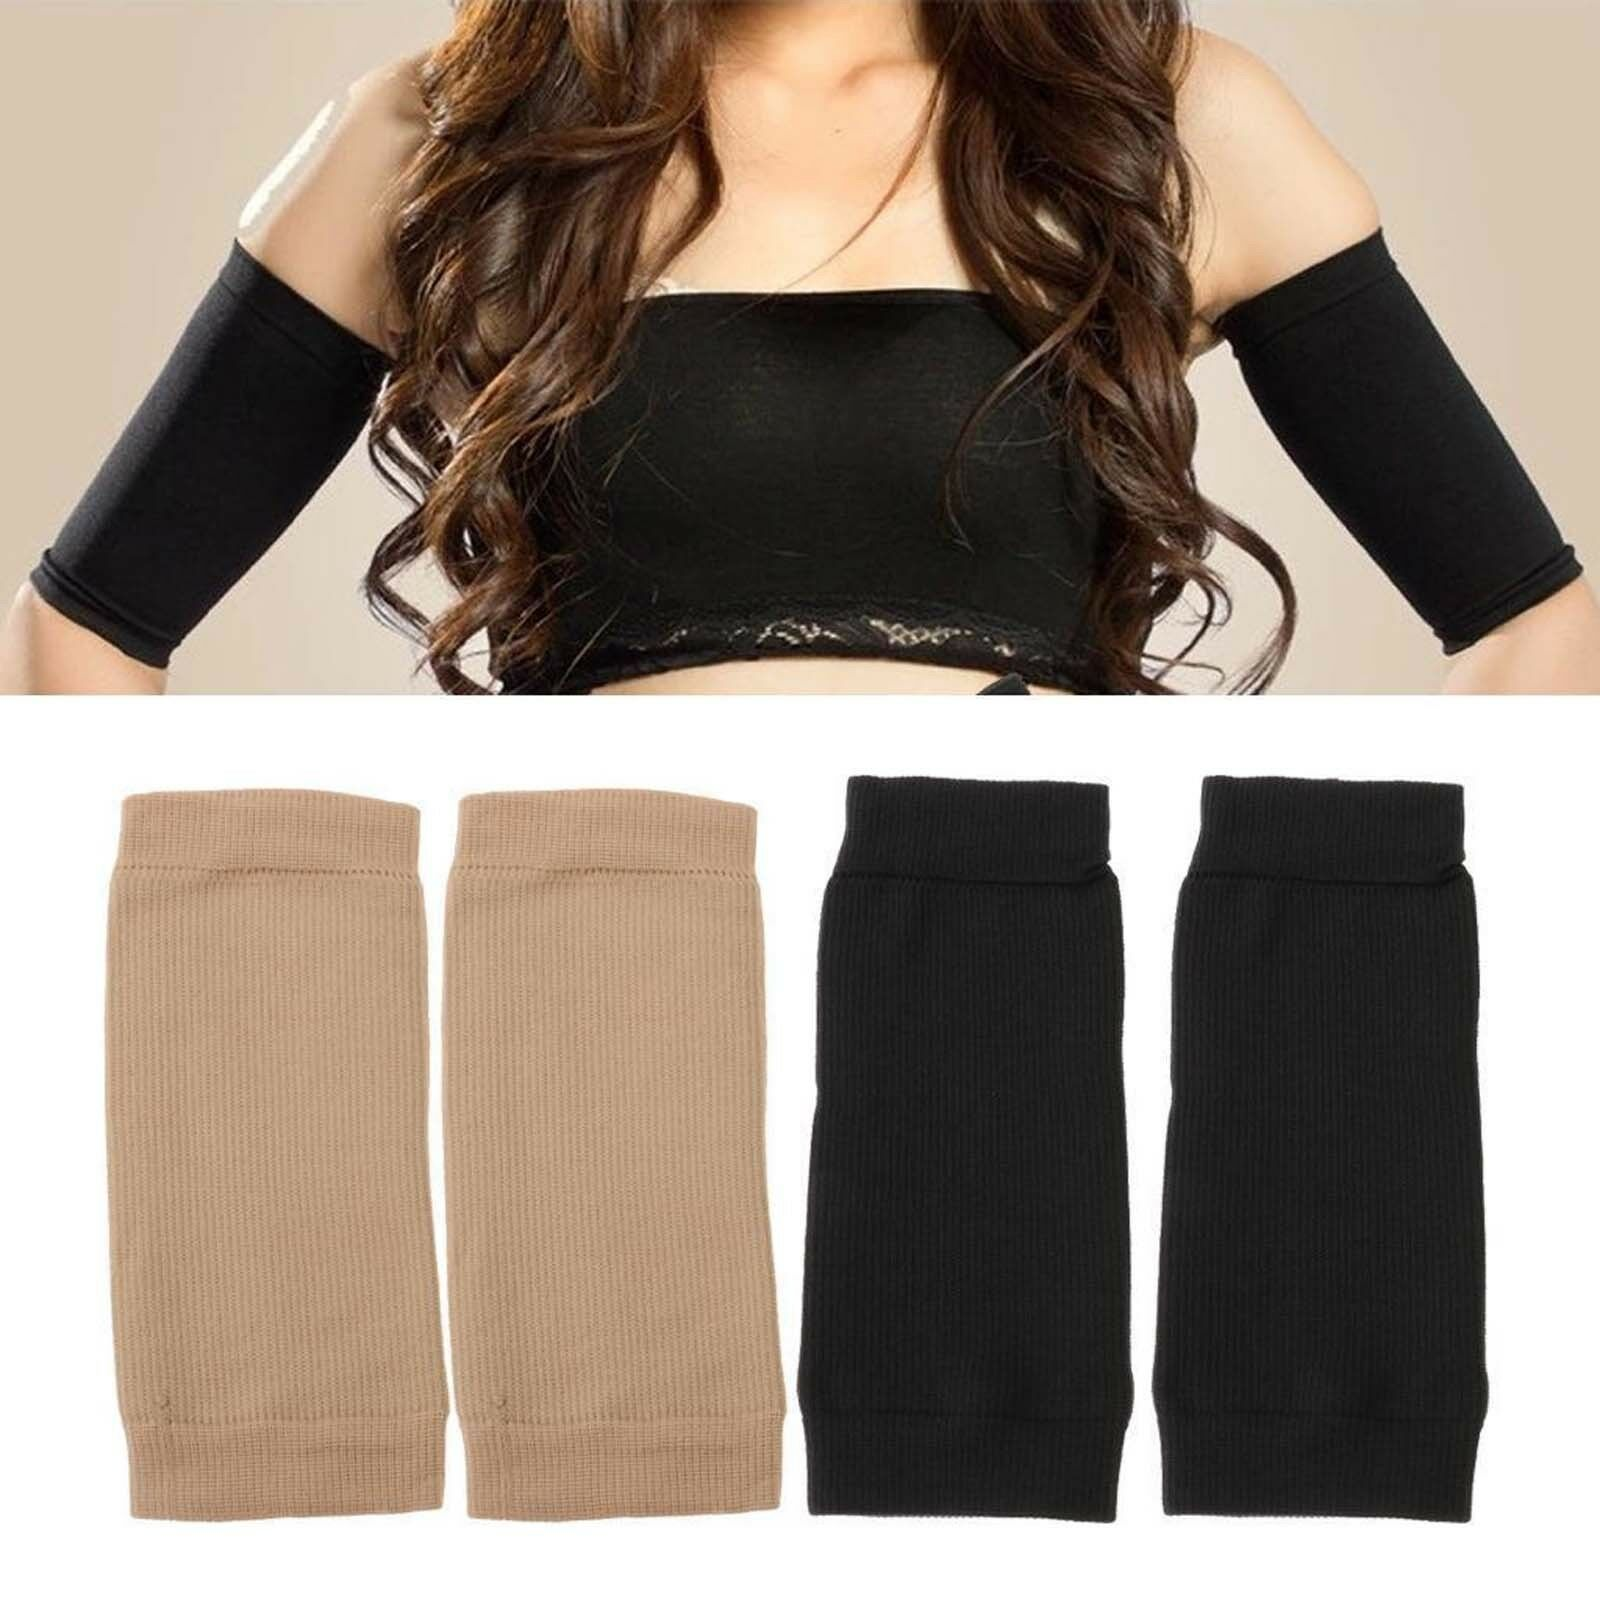 Usa Fitness Compression Slim Arms Sleeve Shaping Arm Shaper Upper Arm Support